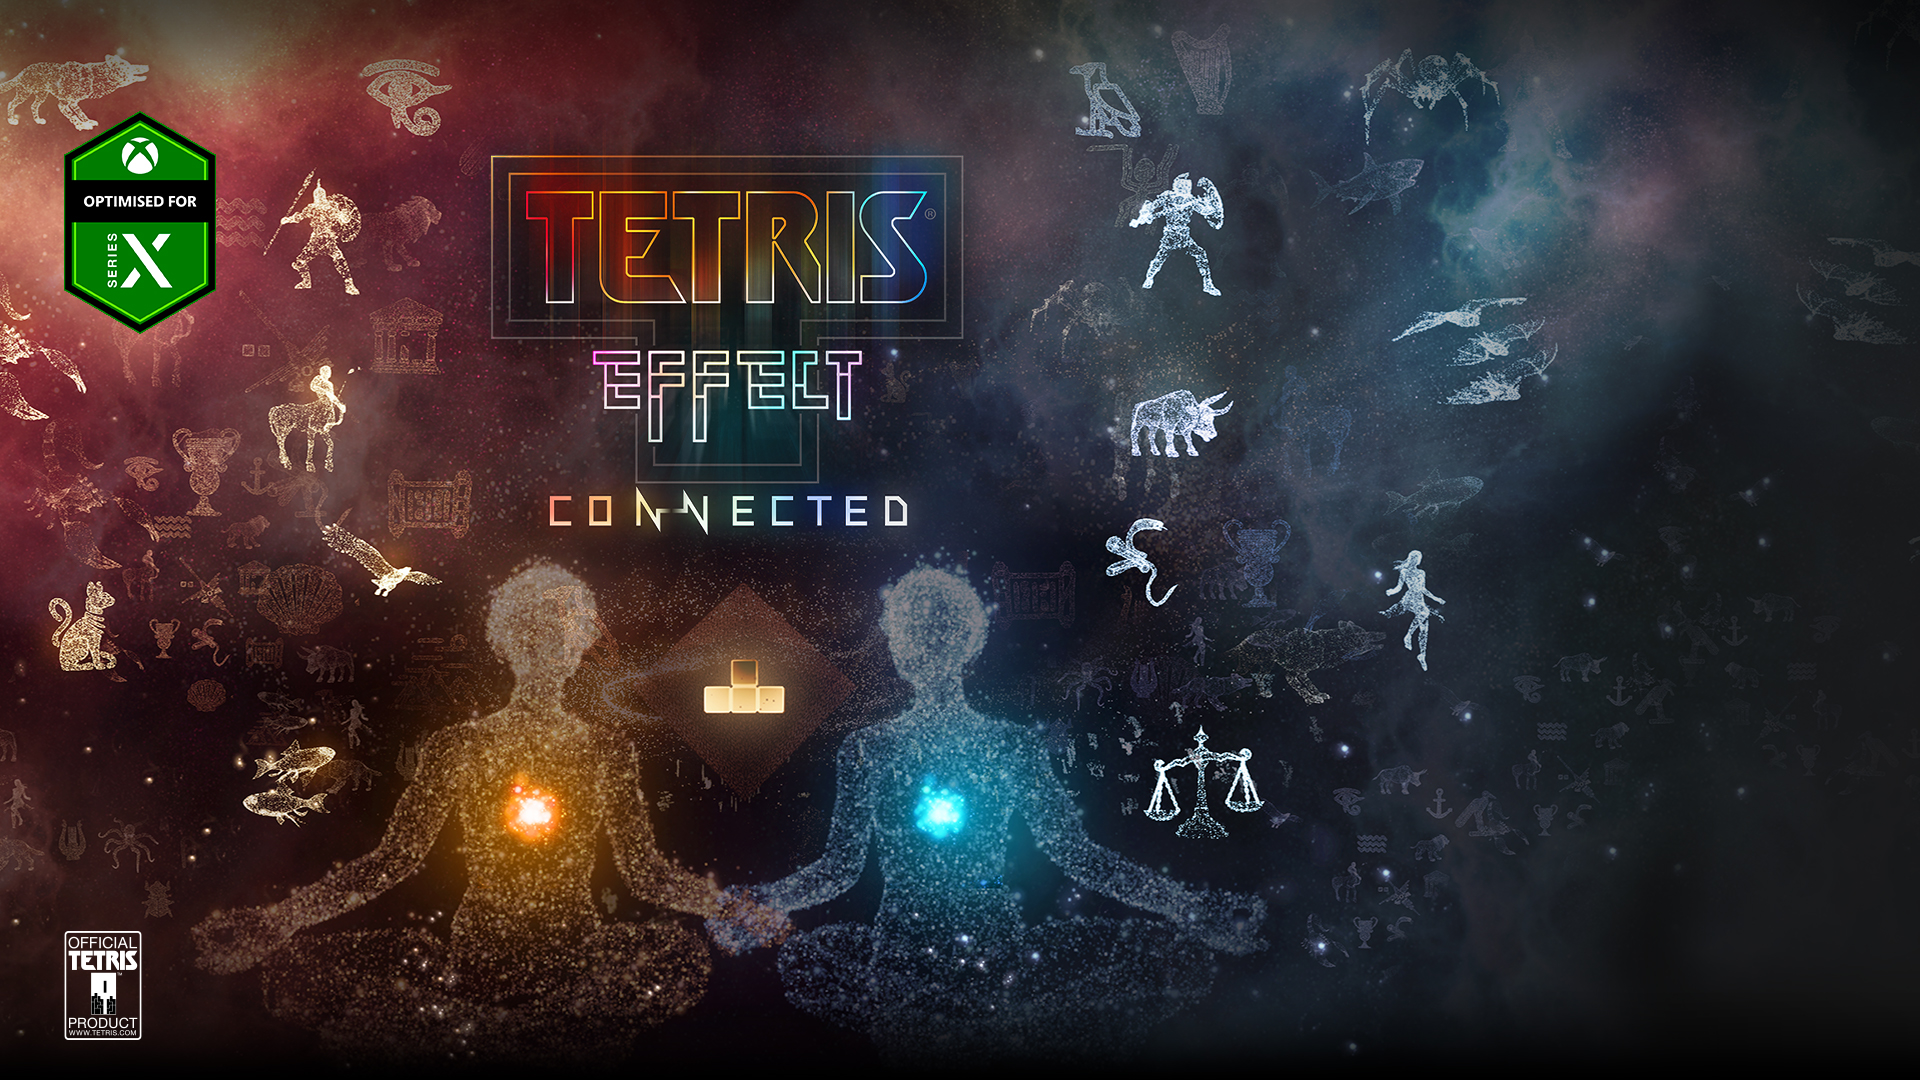 Optimised for Series X, Tetris Effect Connected, Official Tetris Product, a vast landscape of stars arranges to form animals and people.